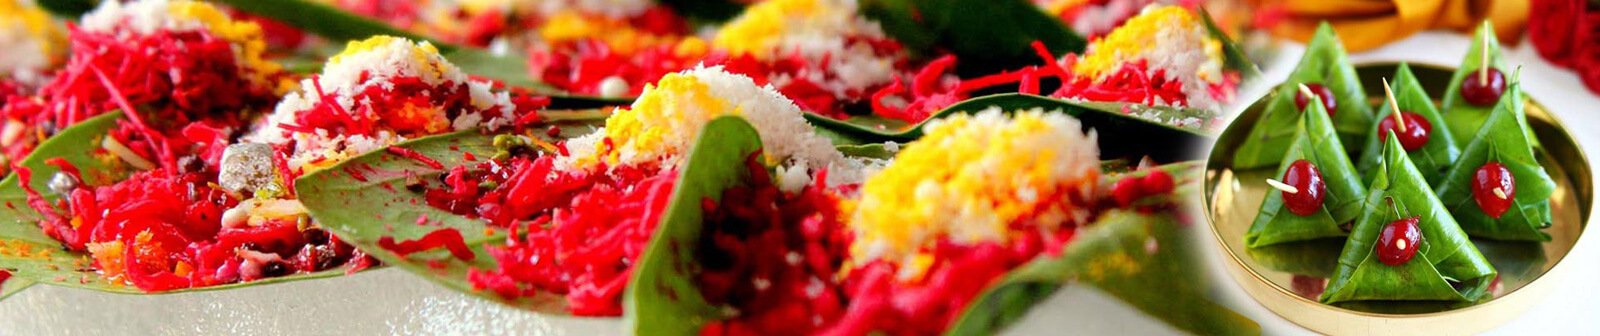 Paan Shops in Bangalore